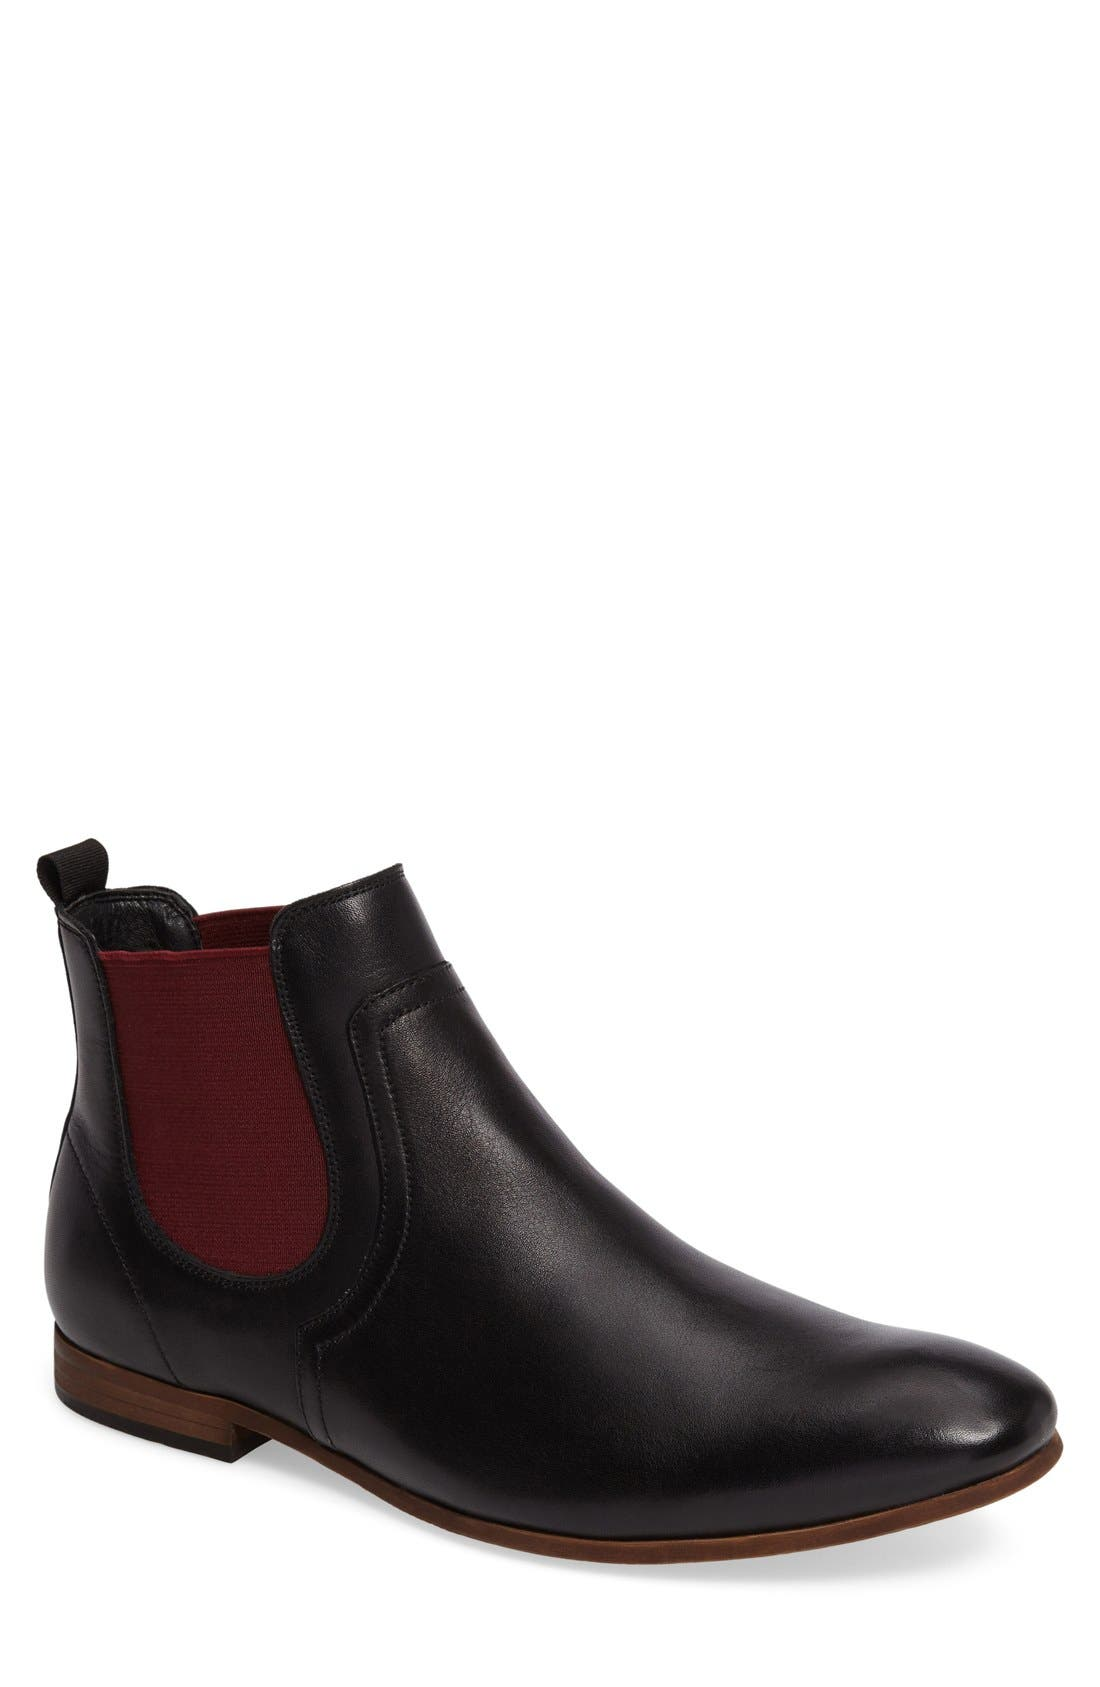 Brysen Chelsea Boot,                         Main,                         color,